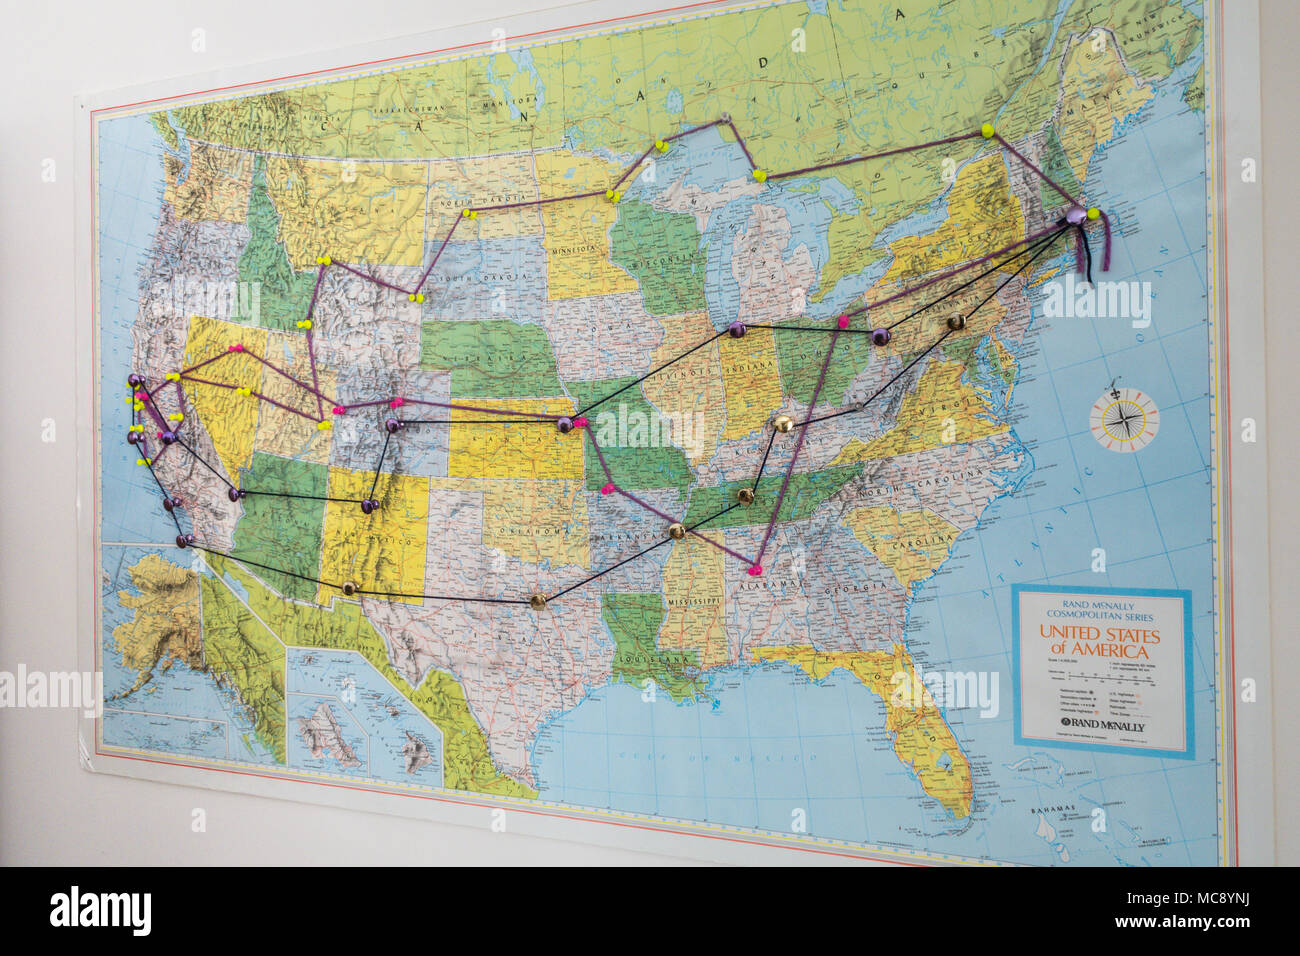 Map of the United States Showing Vacation Trip Routes, USA - Stock Image